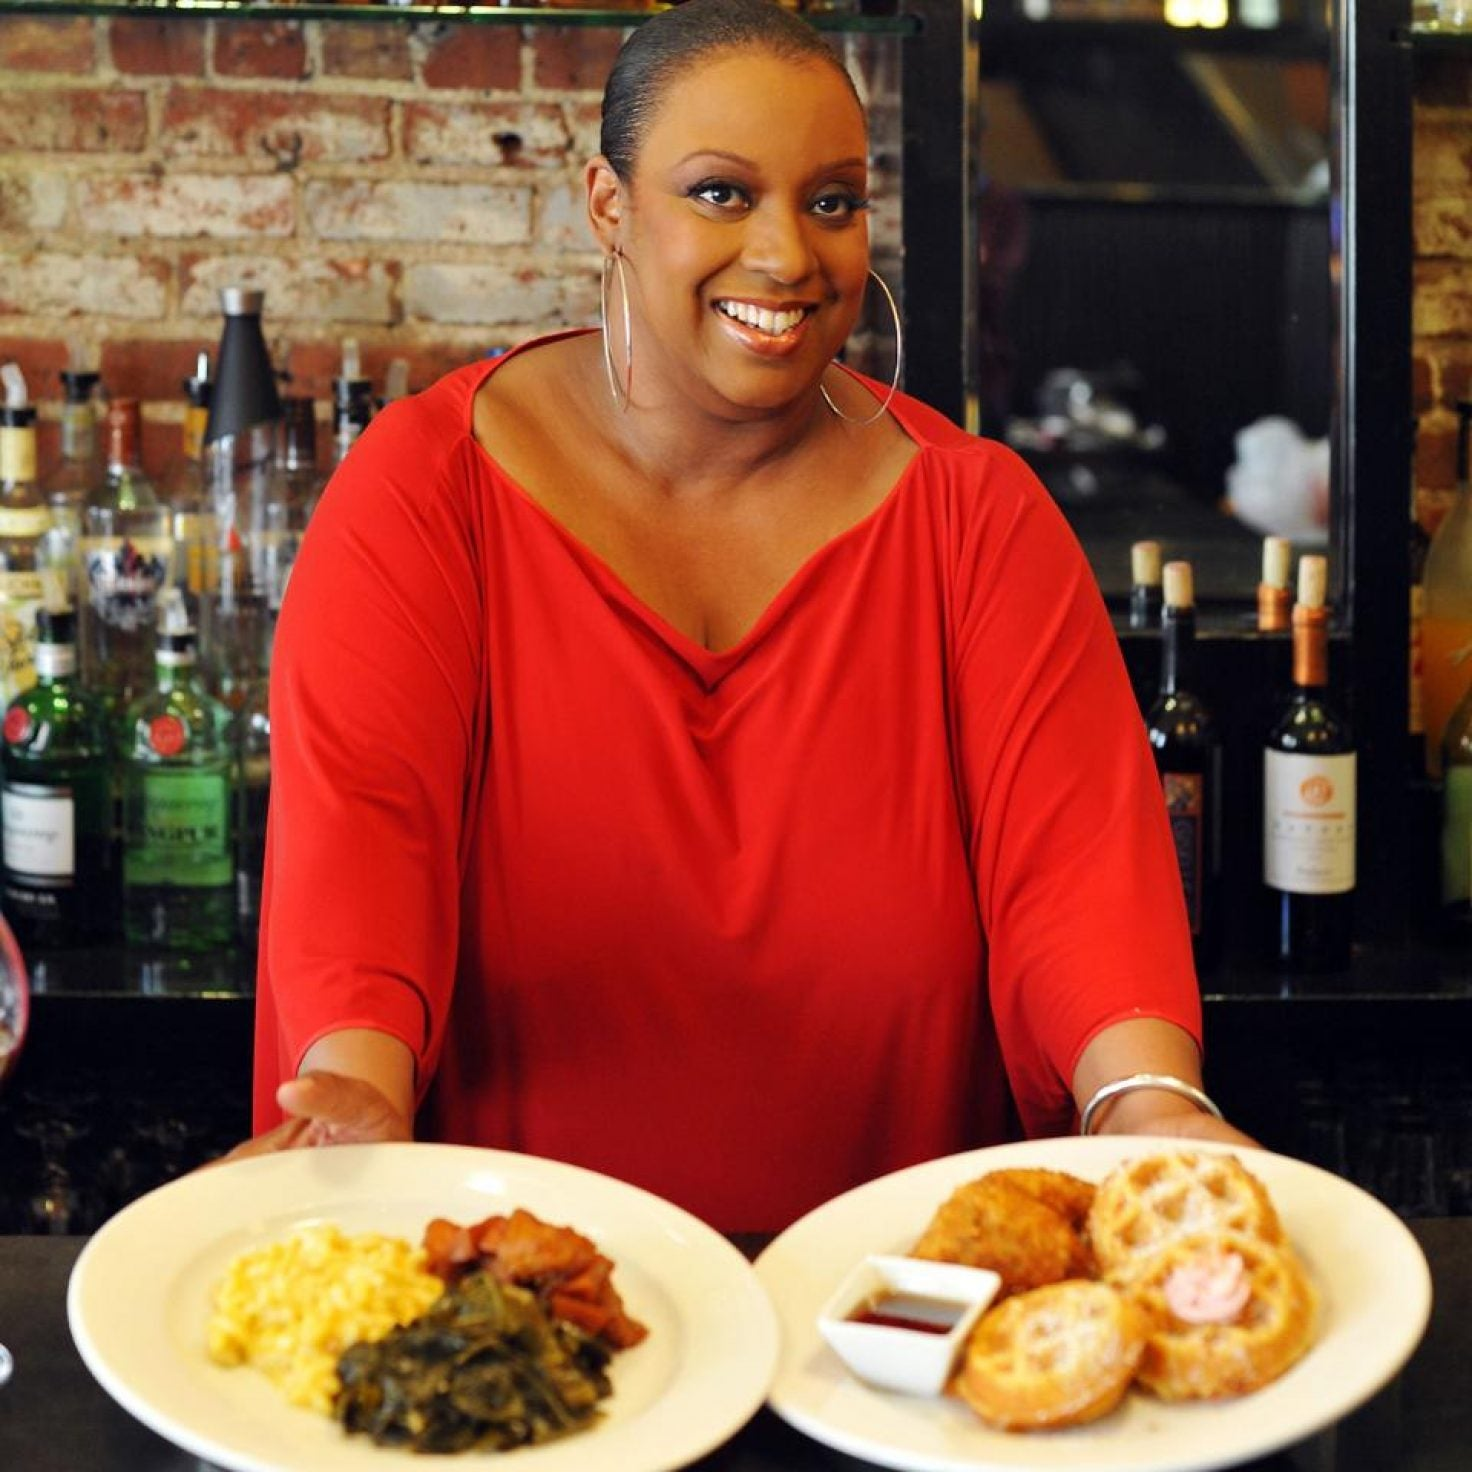 Amid A Pandemic, This Black Woman Restaurateur Found A Way To Thrive